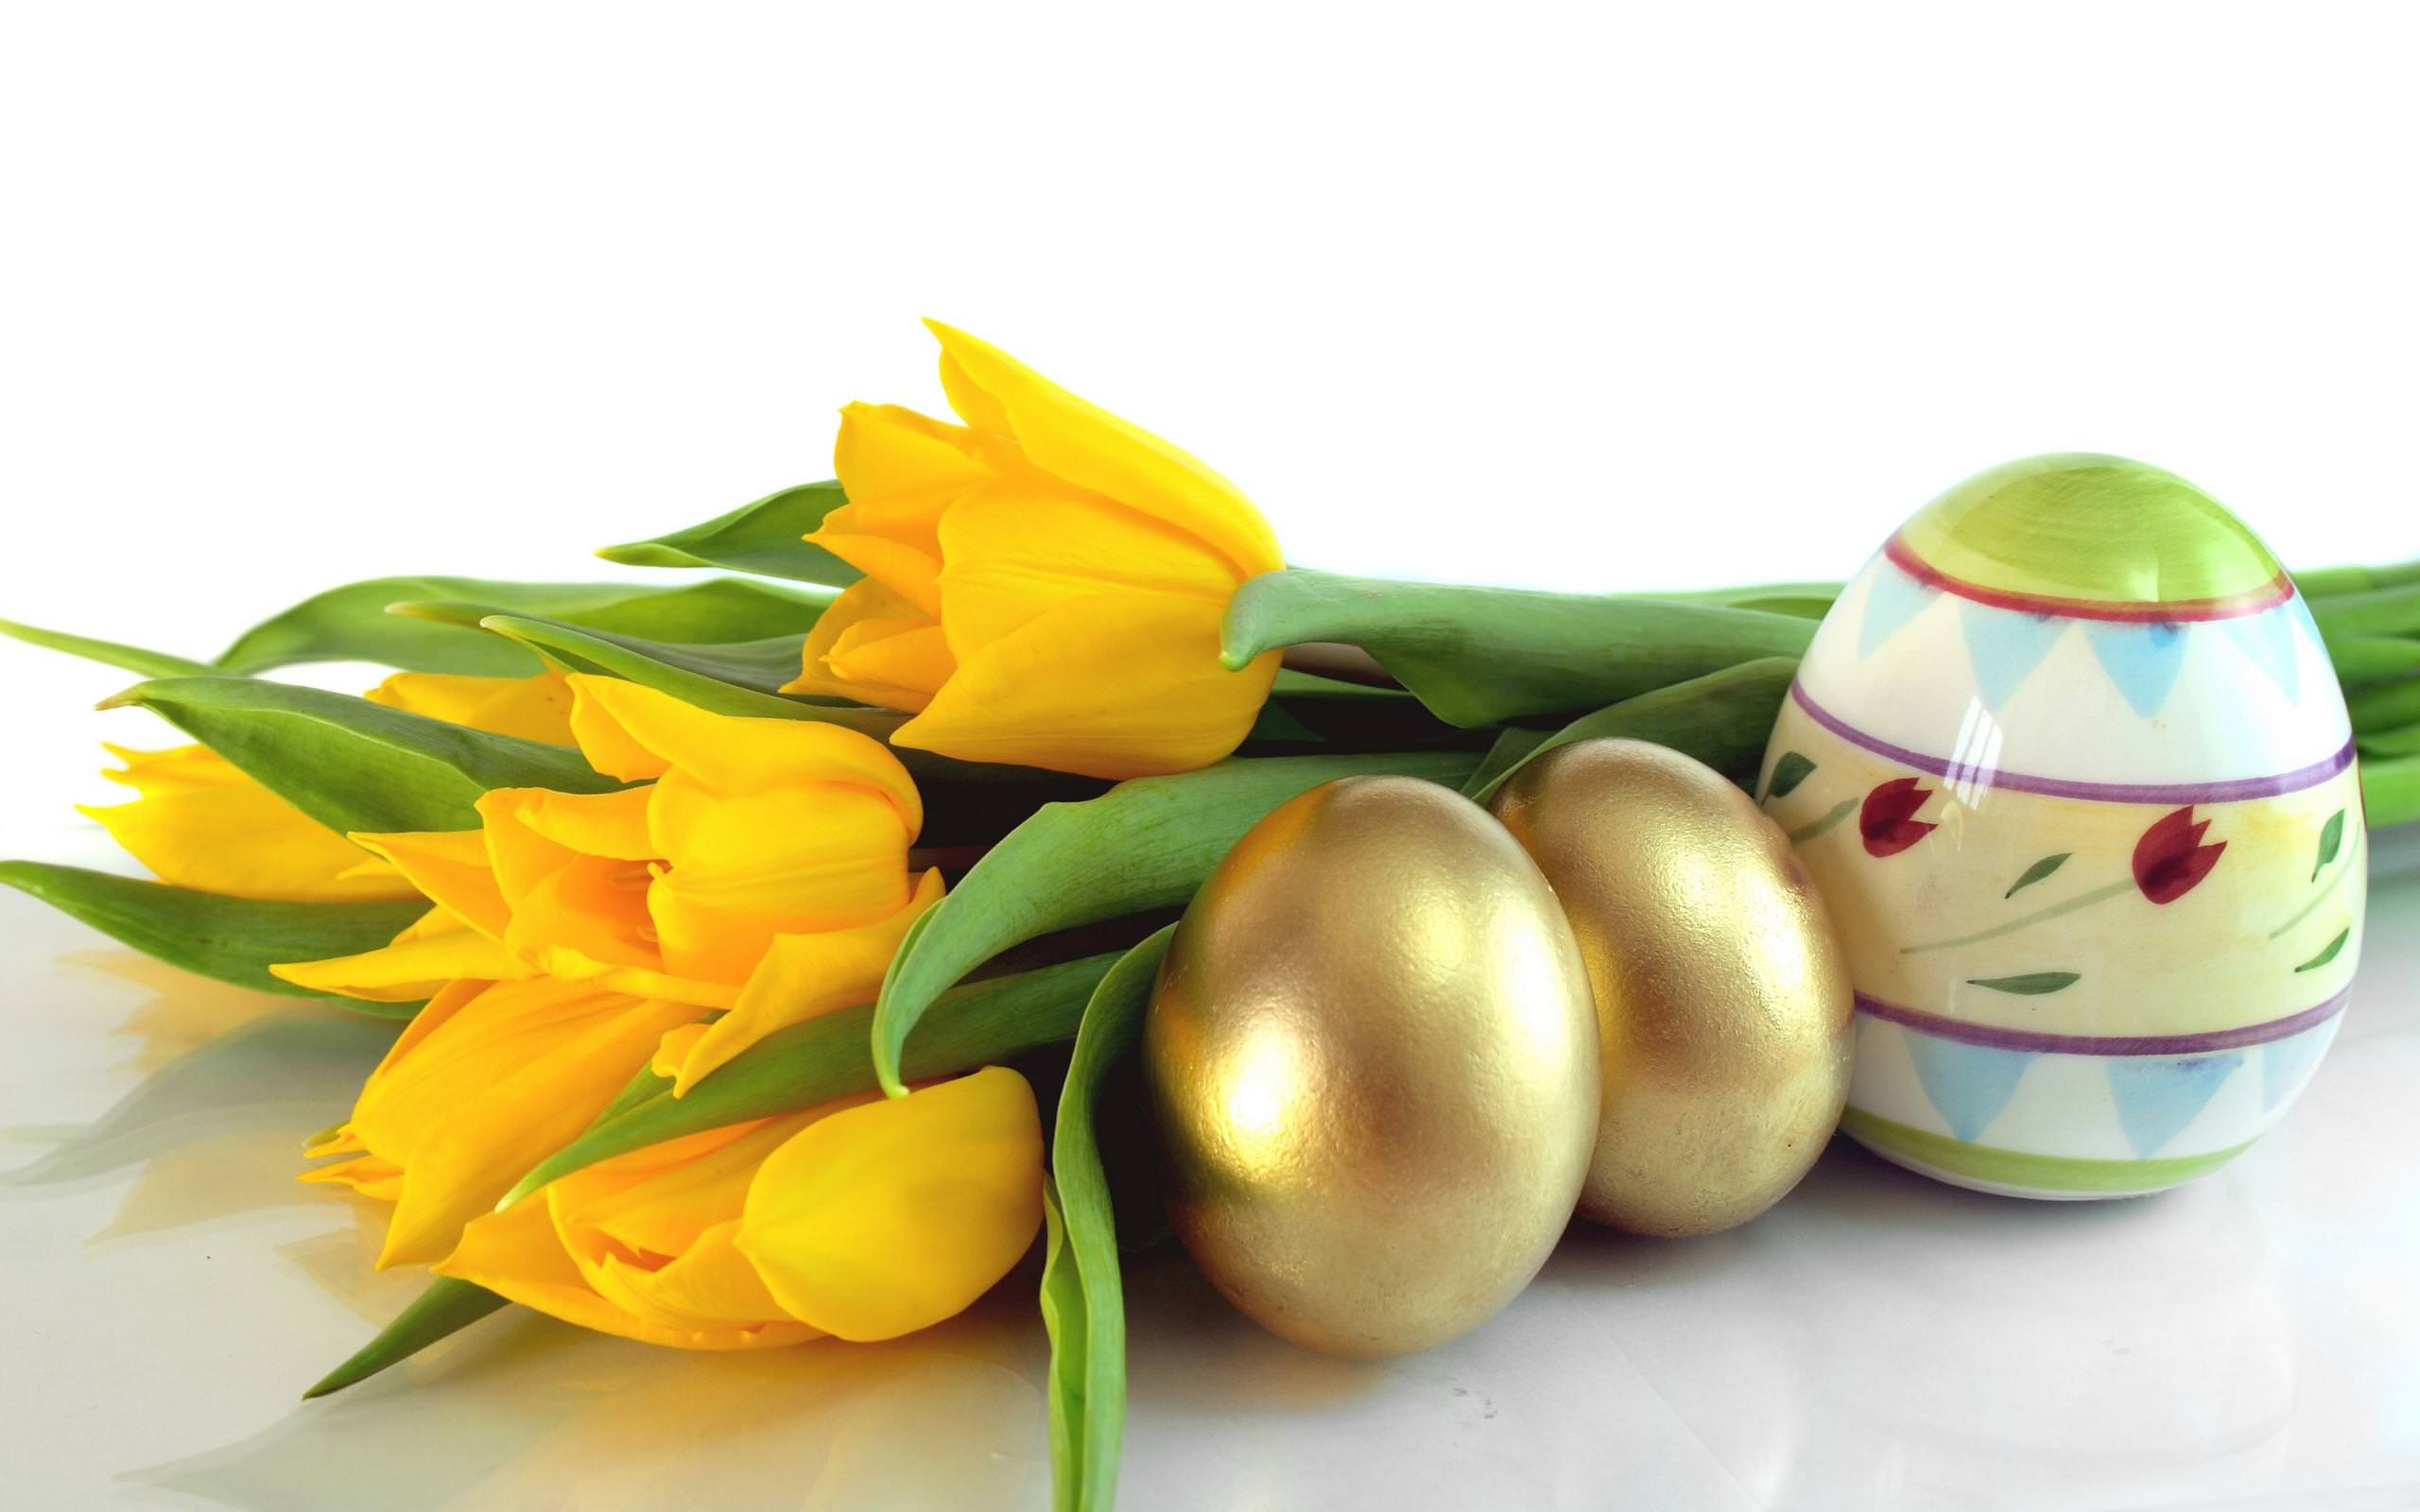 Easter,Background,Designs,Eggs,Tulips